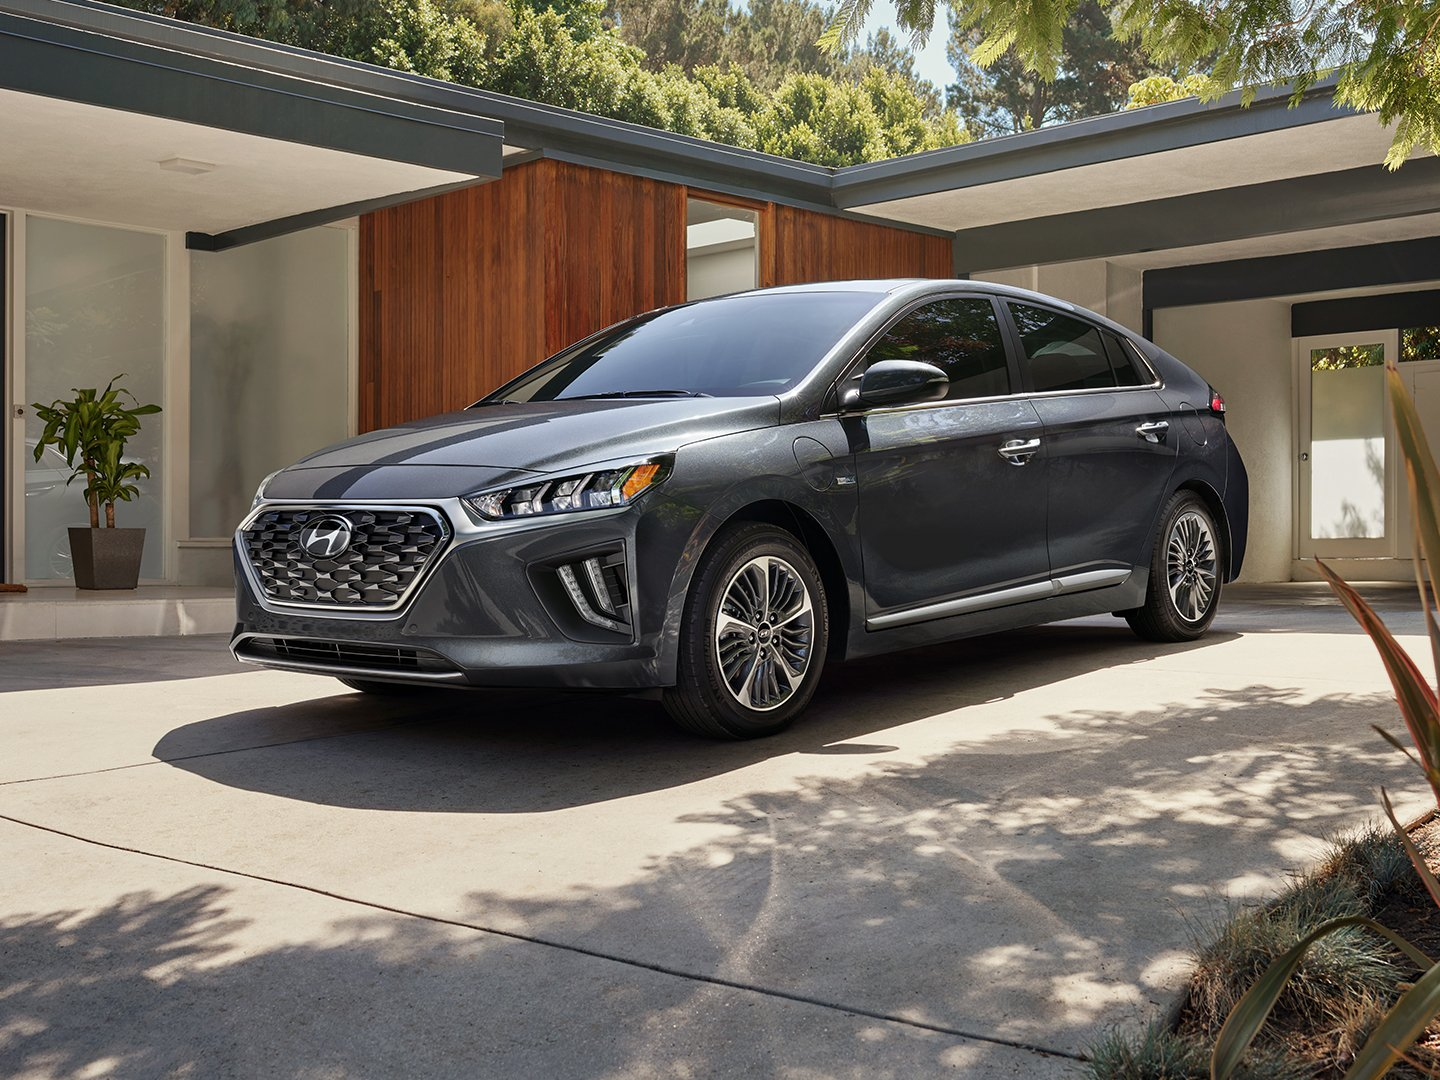 2020 Ioniq Plug In Hybrid in Summit Gray